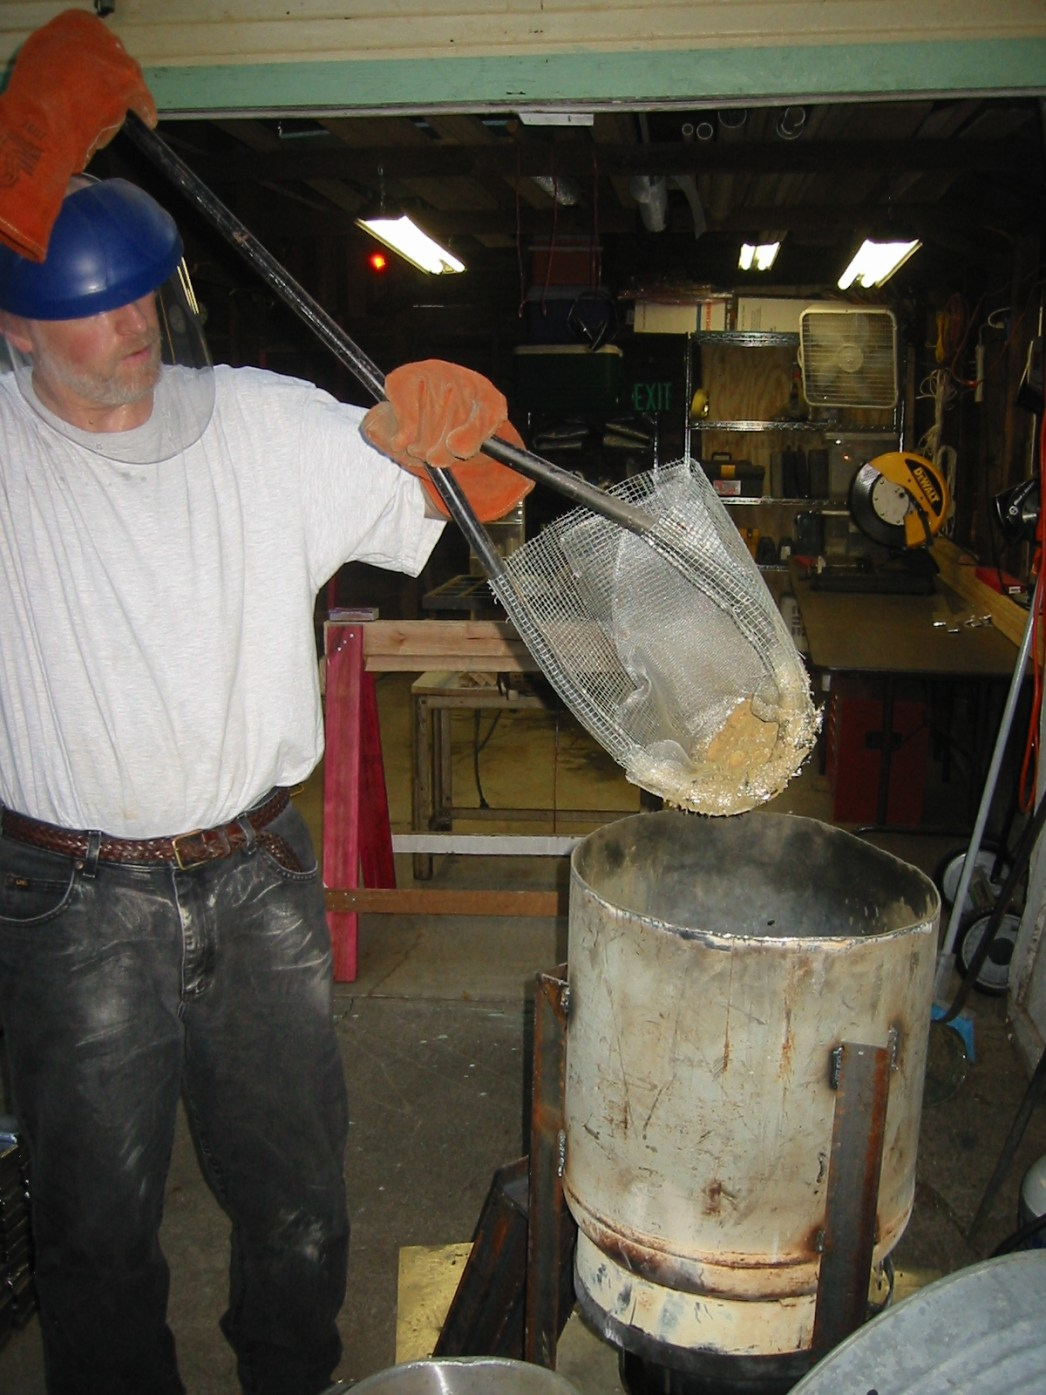 (8) Screening the remaining trash from the molten lead.